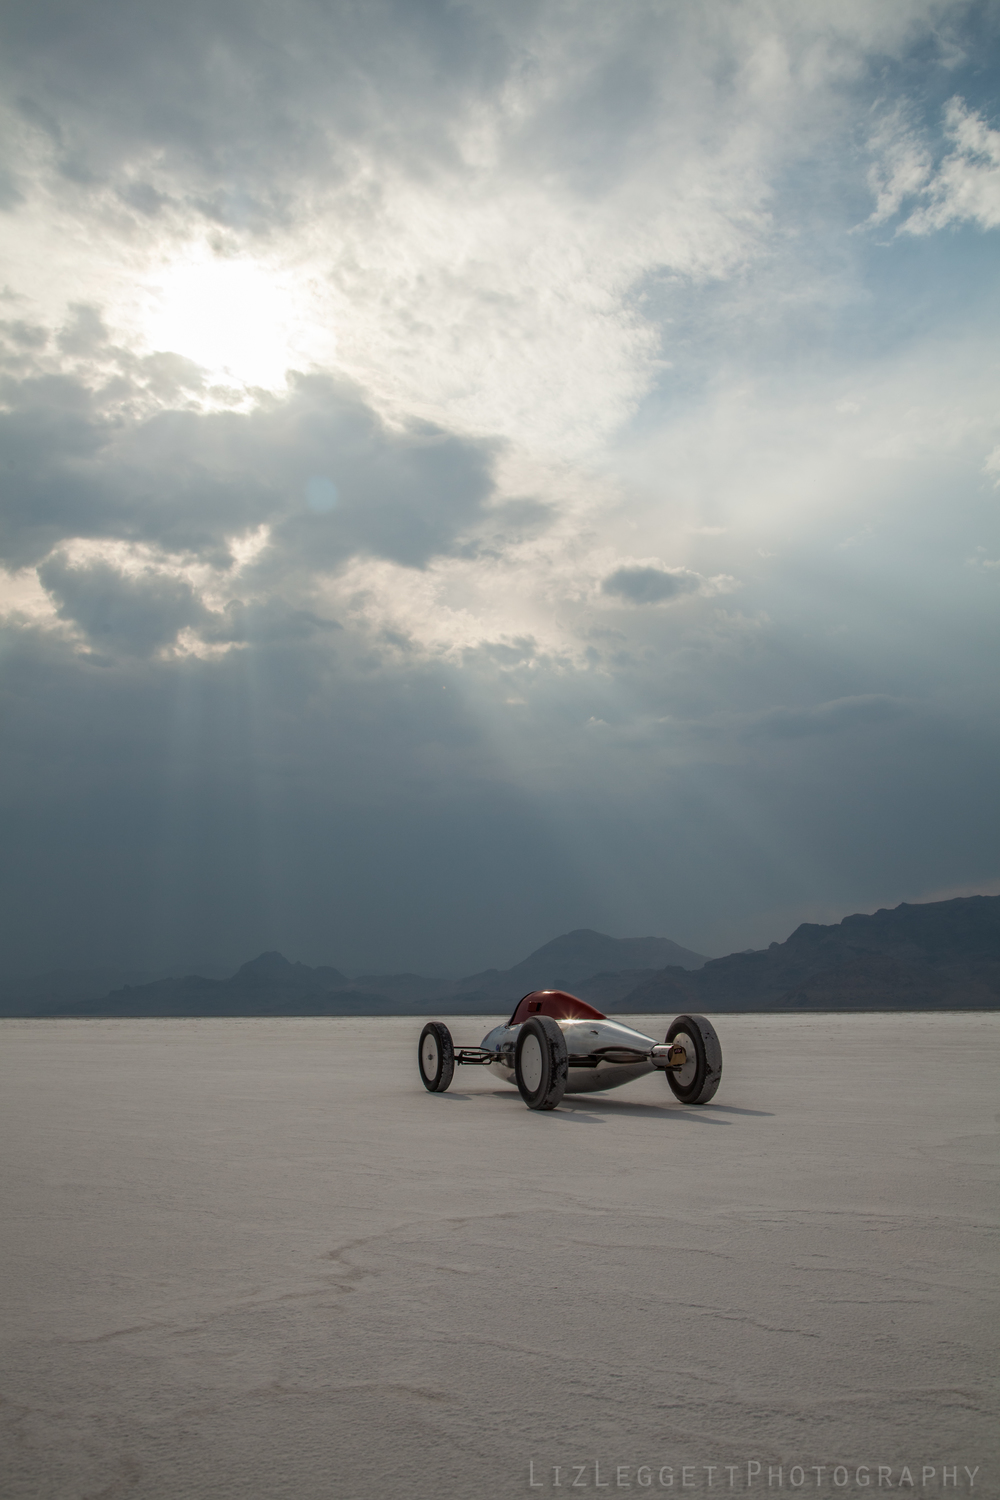 liz_leggett_photography_images_for_bonneville_speed_buffing-9771.jpg